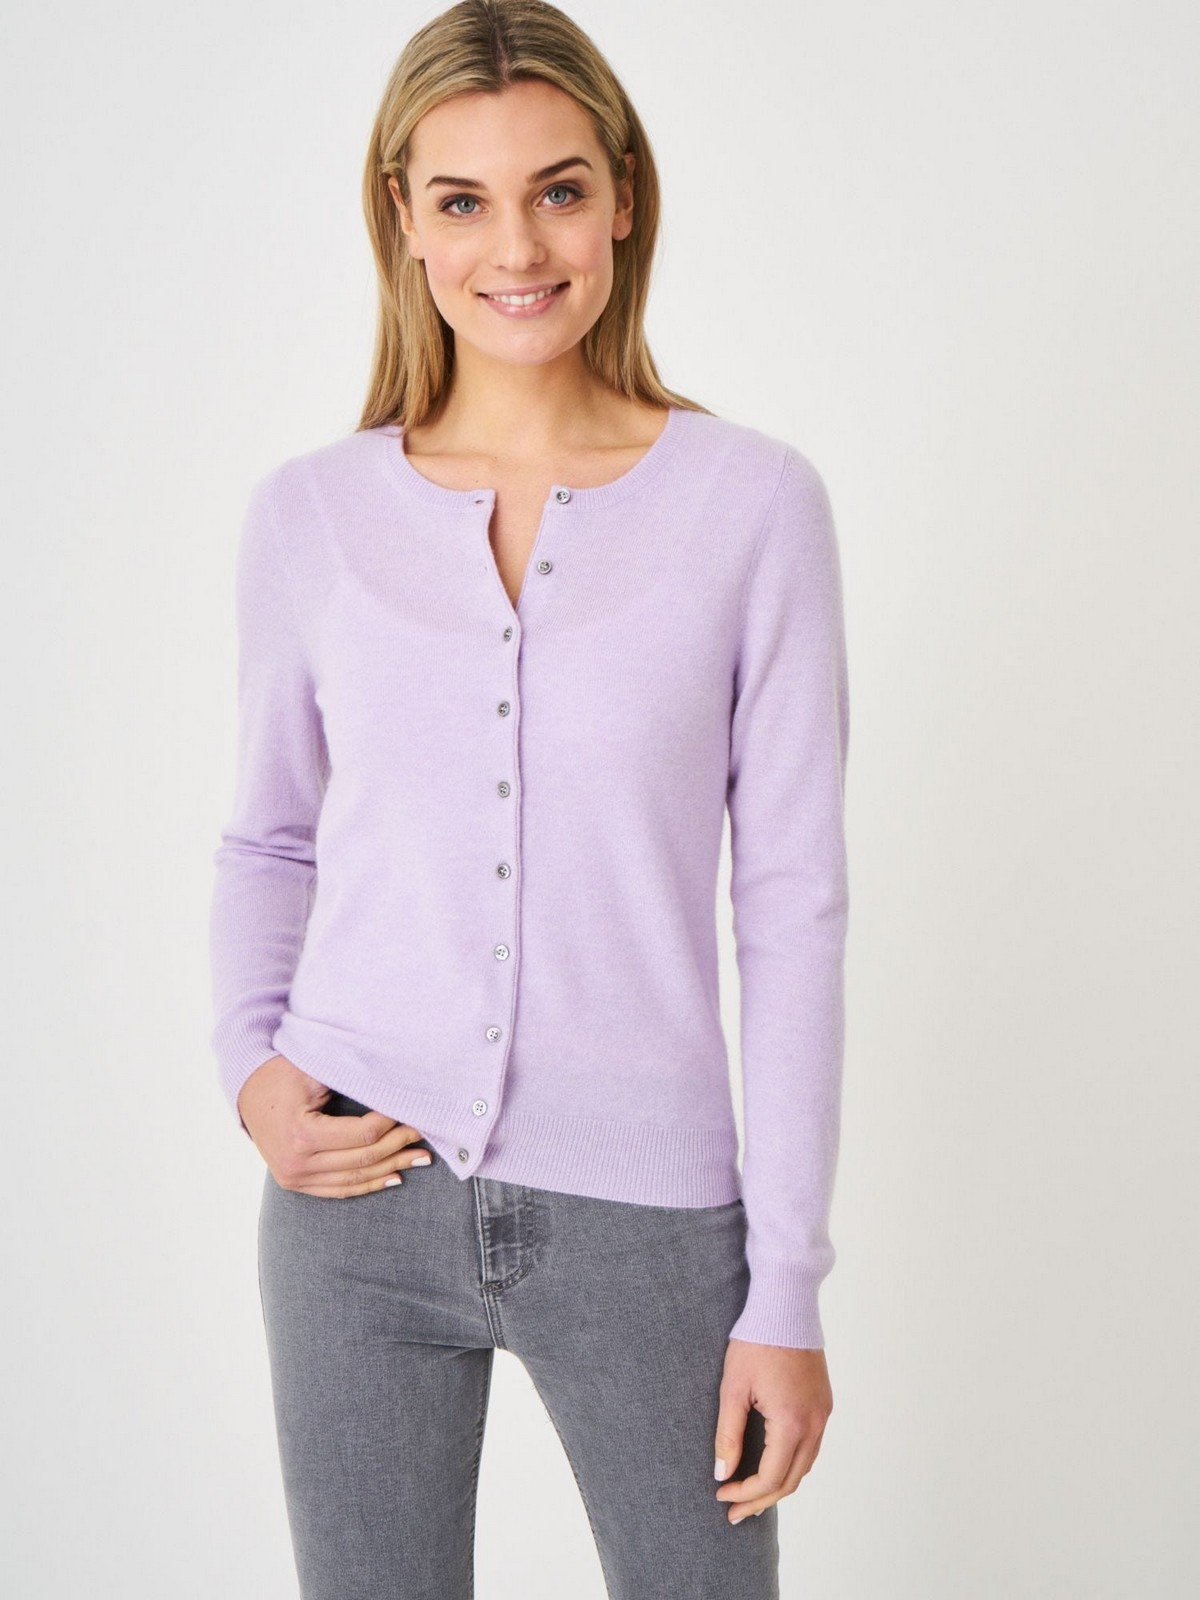 Cardigan cashmere - 100505 - Repeat